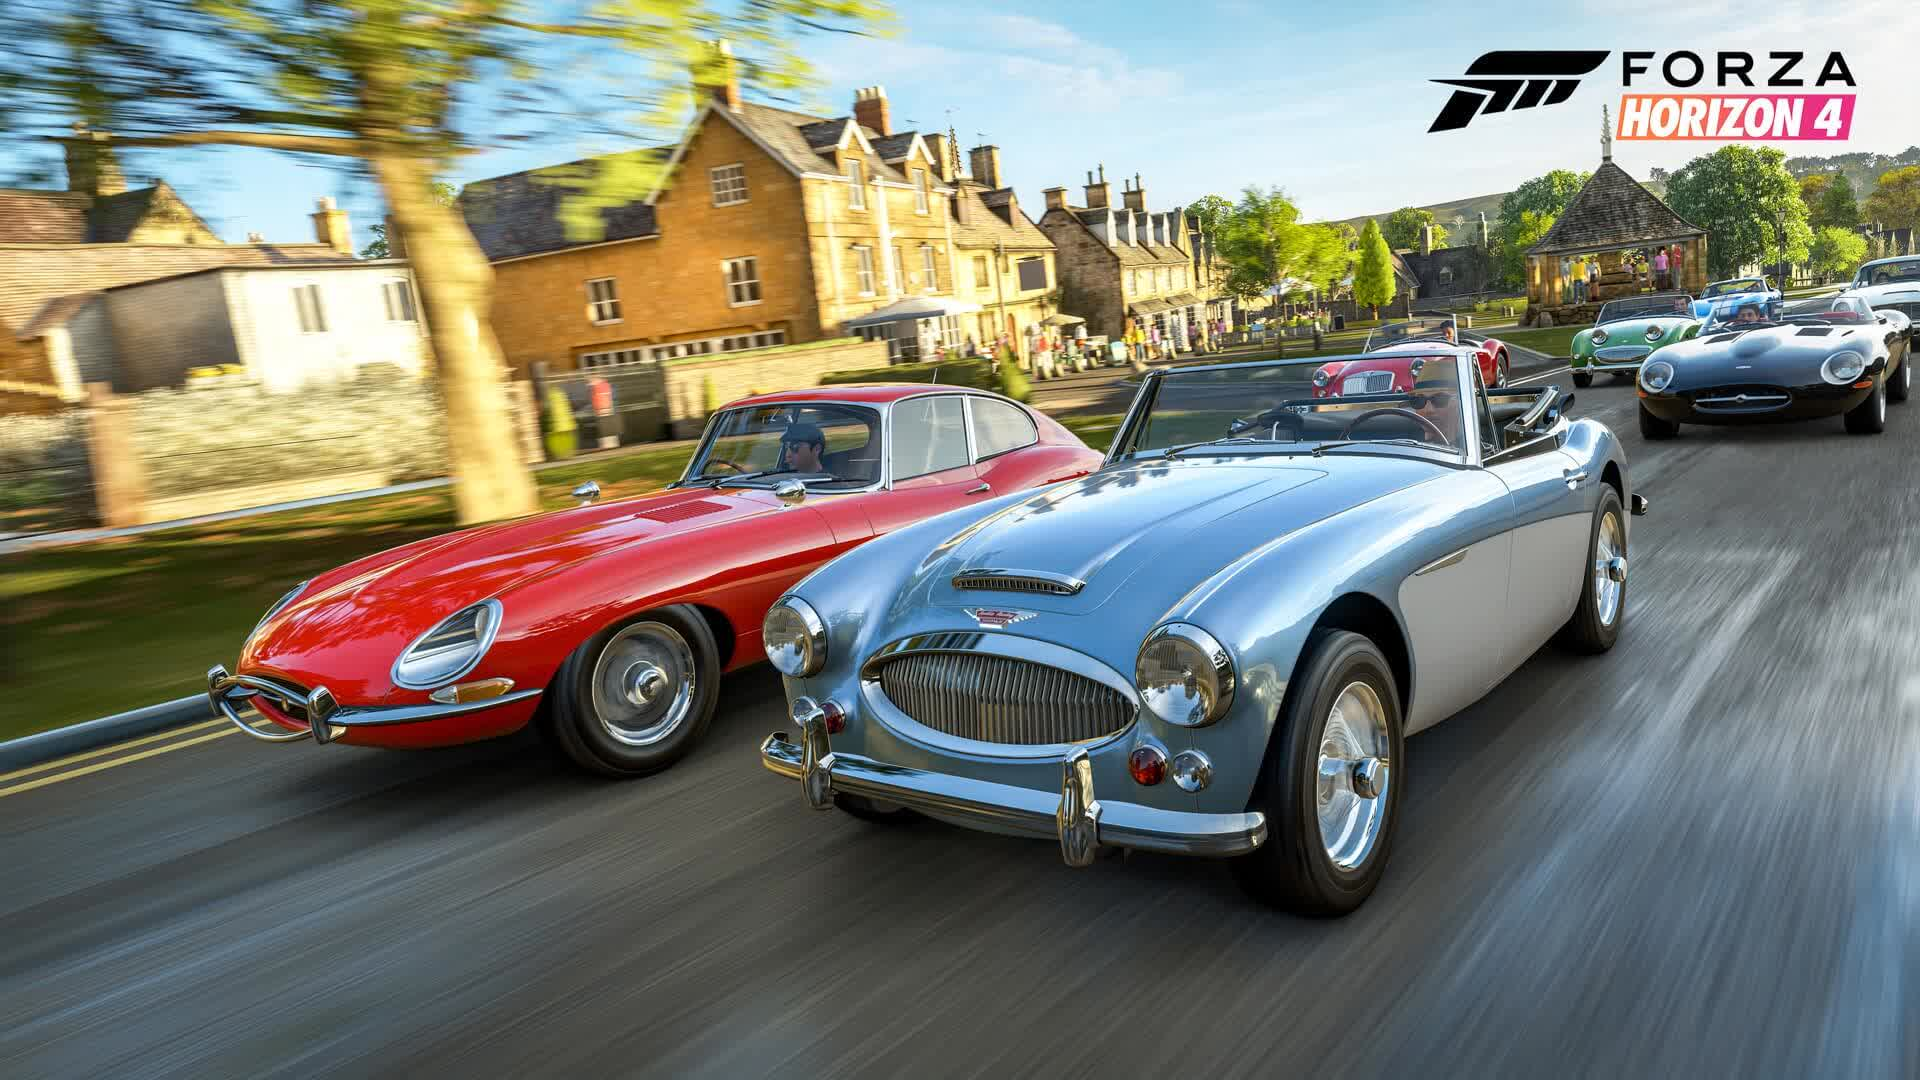 Forza Horizon 4 Benchmarked - TechSpot